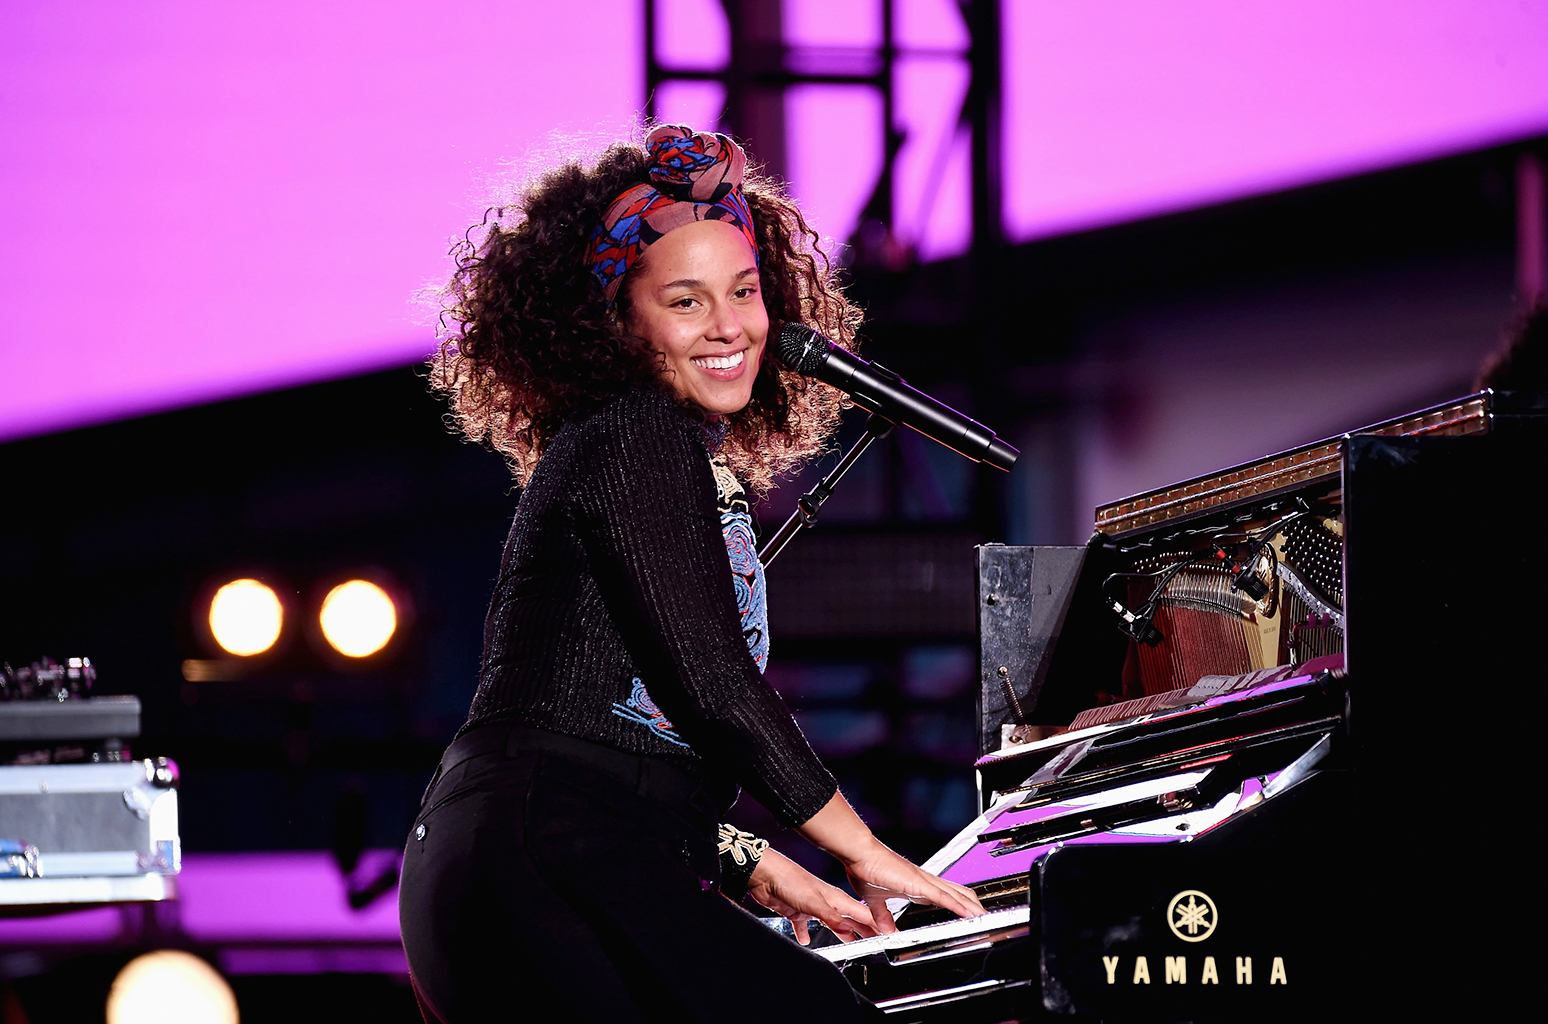 01-alicia-keys-perform-time-square-new-york-2016-billboard-1548